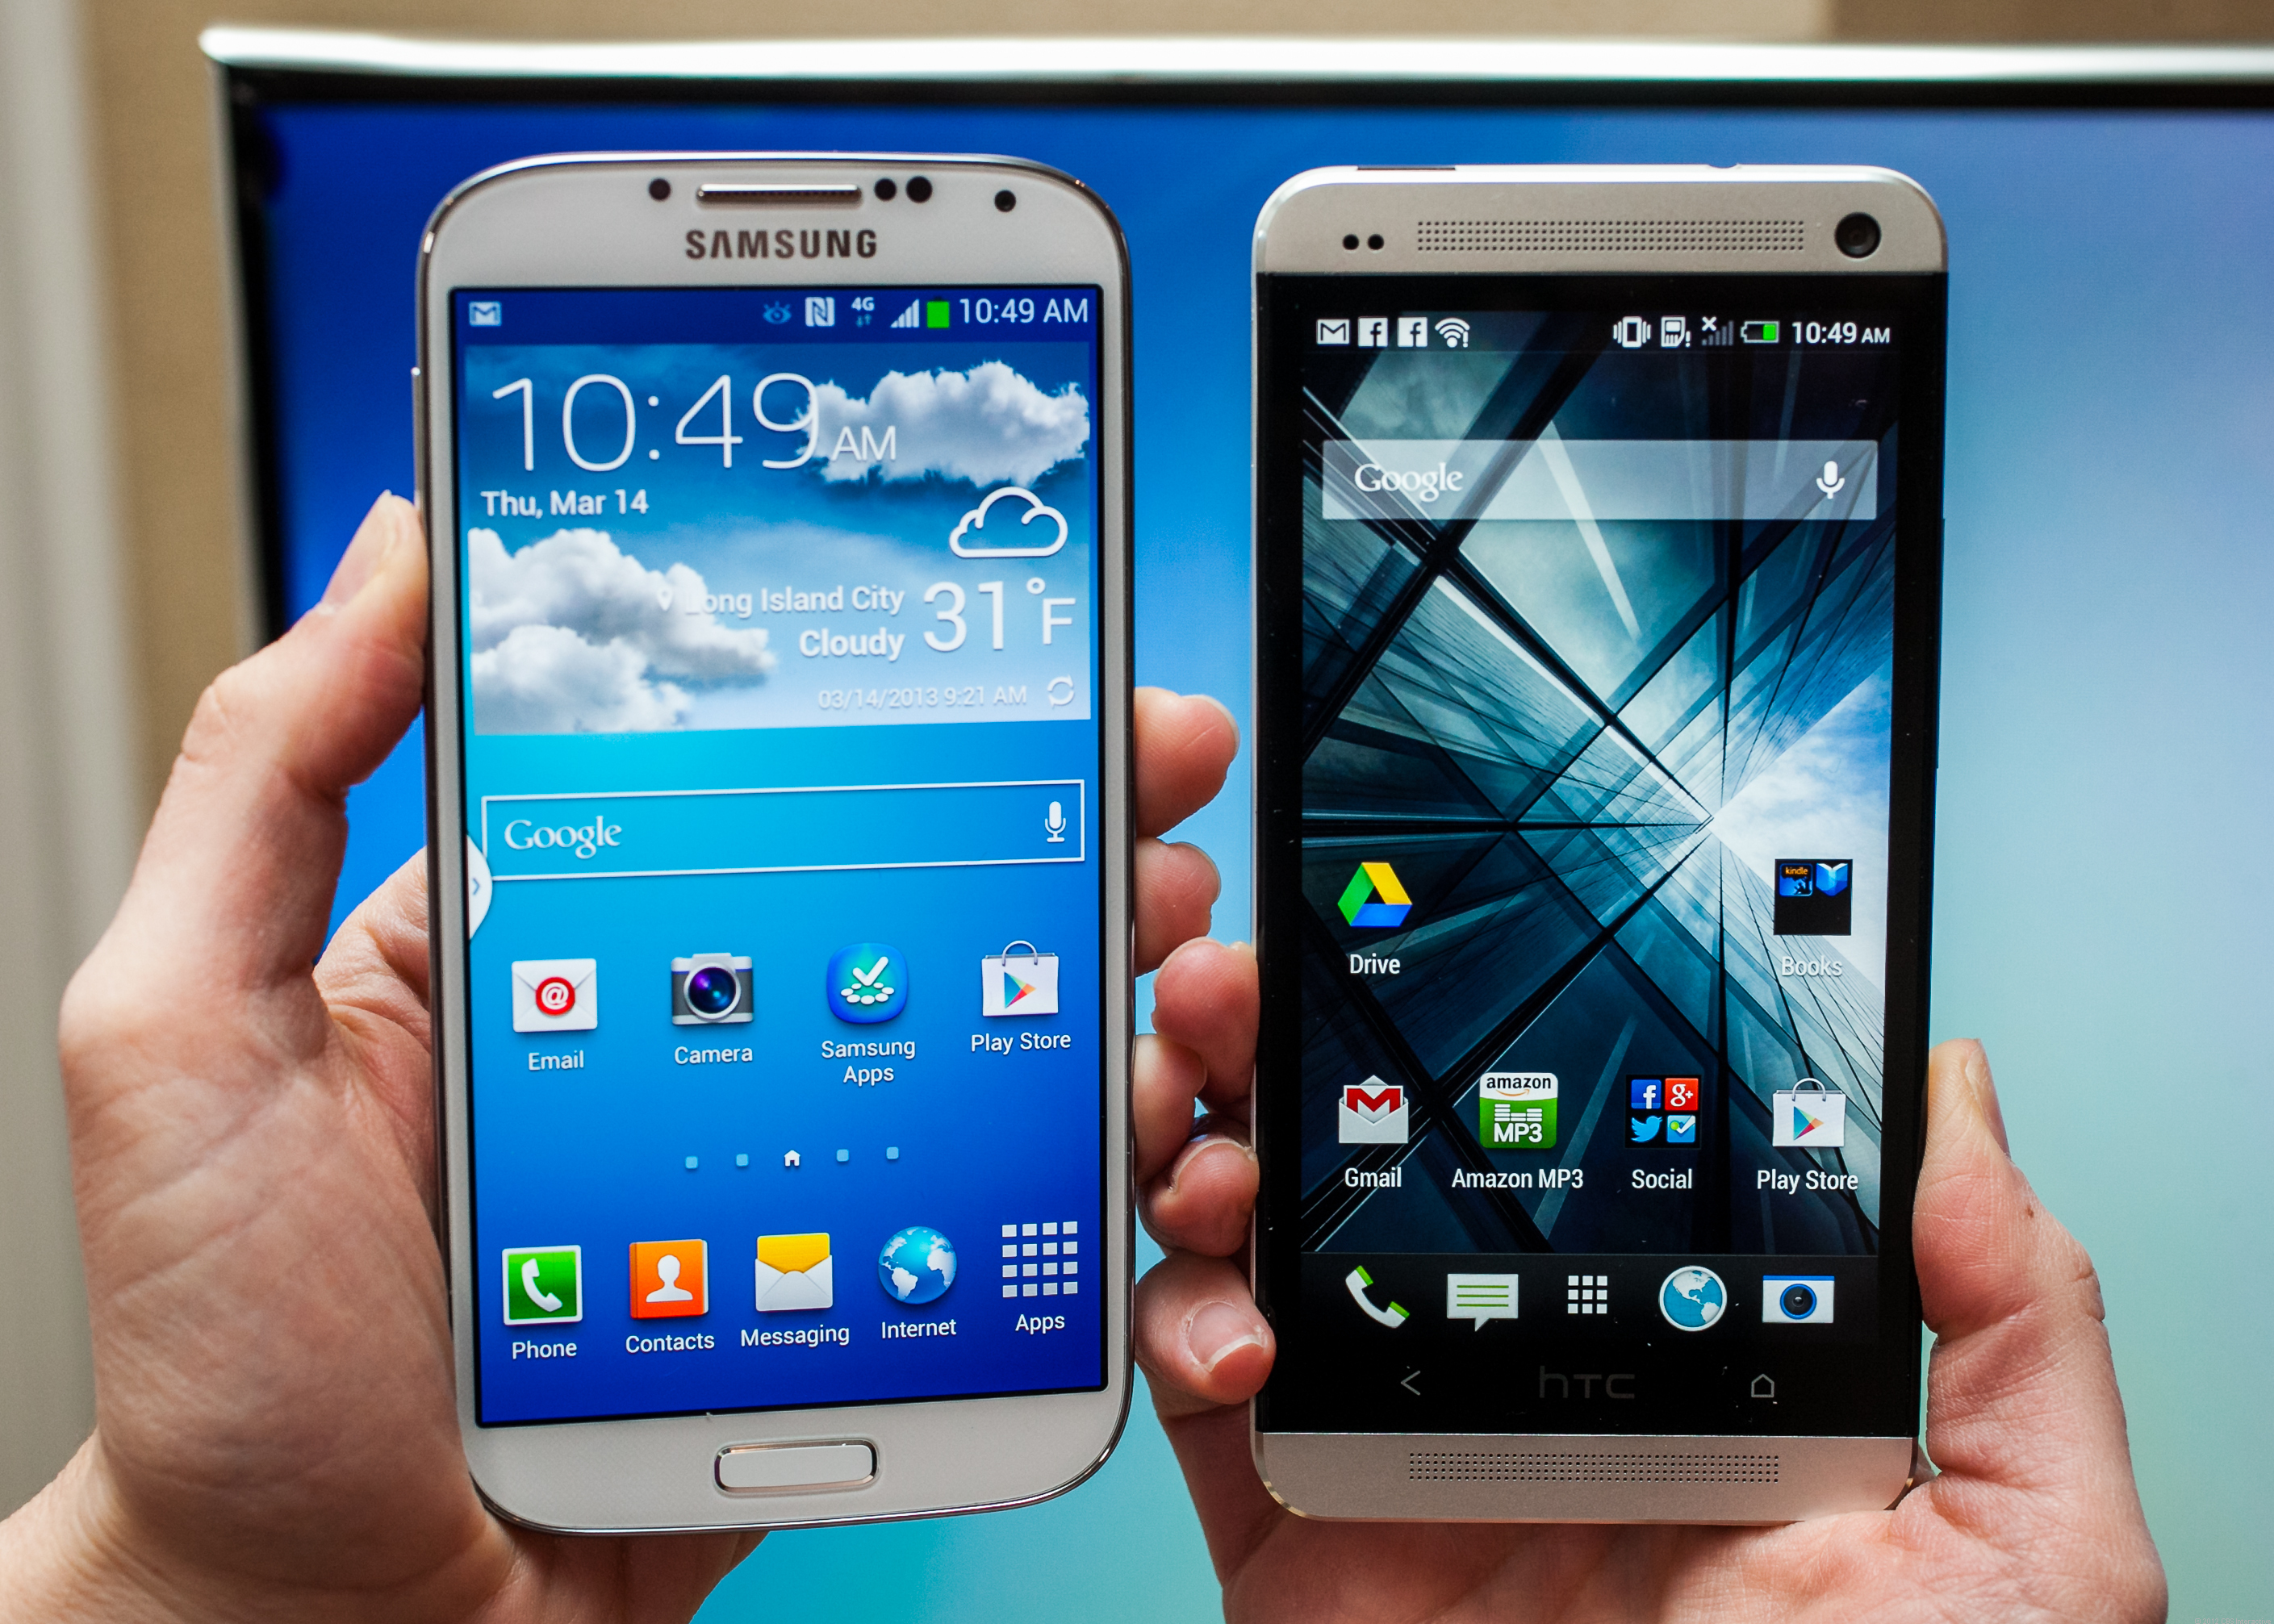 Samsung galaxy s4 vs iphone 5 vs htc one